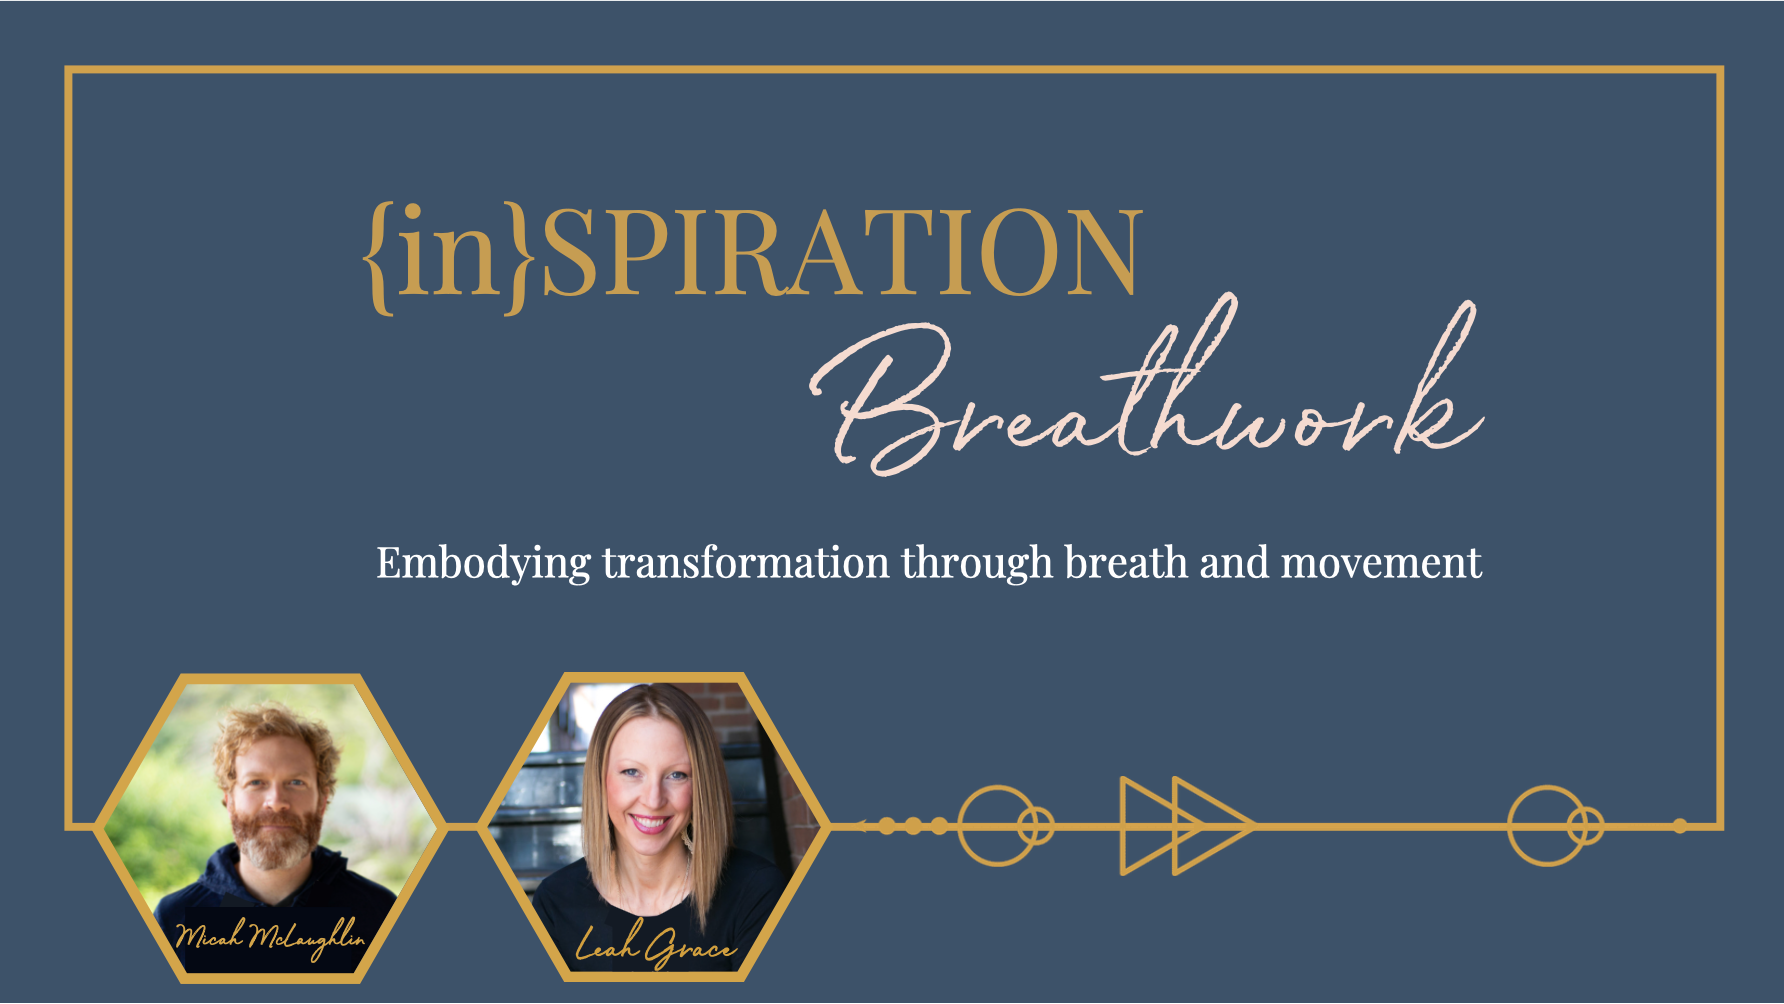 {in}Spiration Breathwork by Leah Grace & Micah McLaughlin